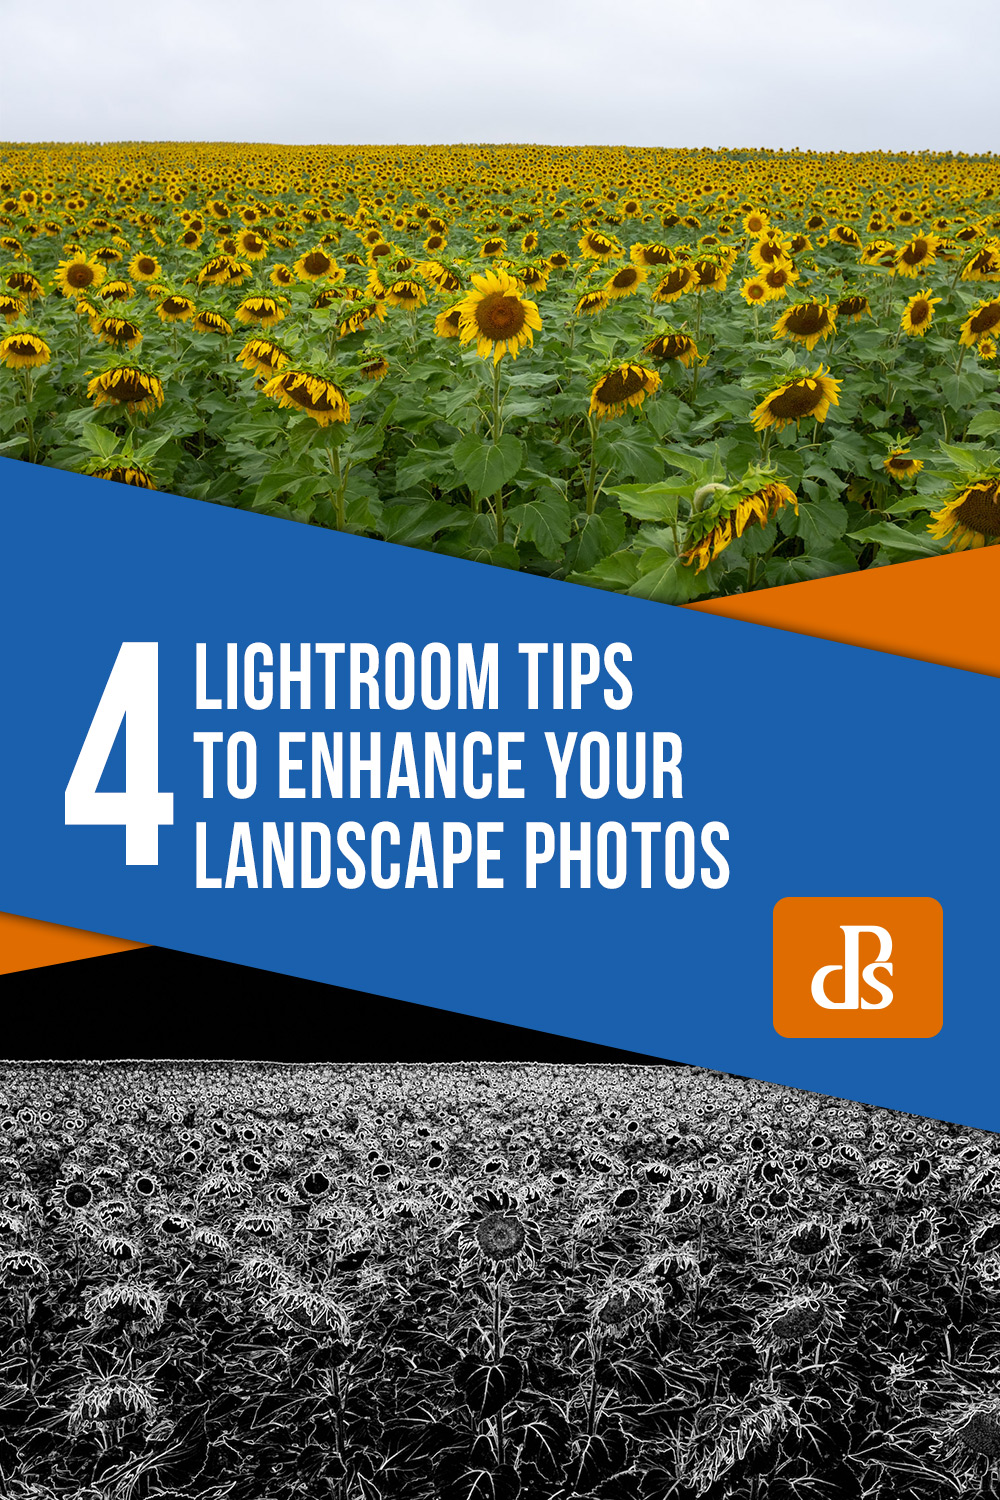 Lightroom tips for landscape photos' s